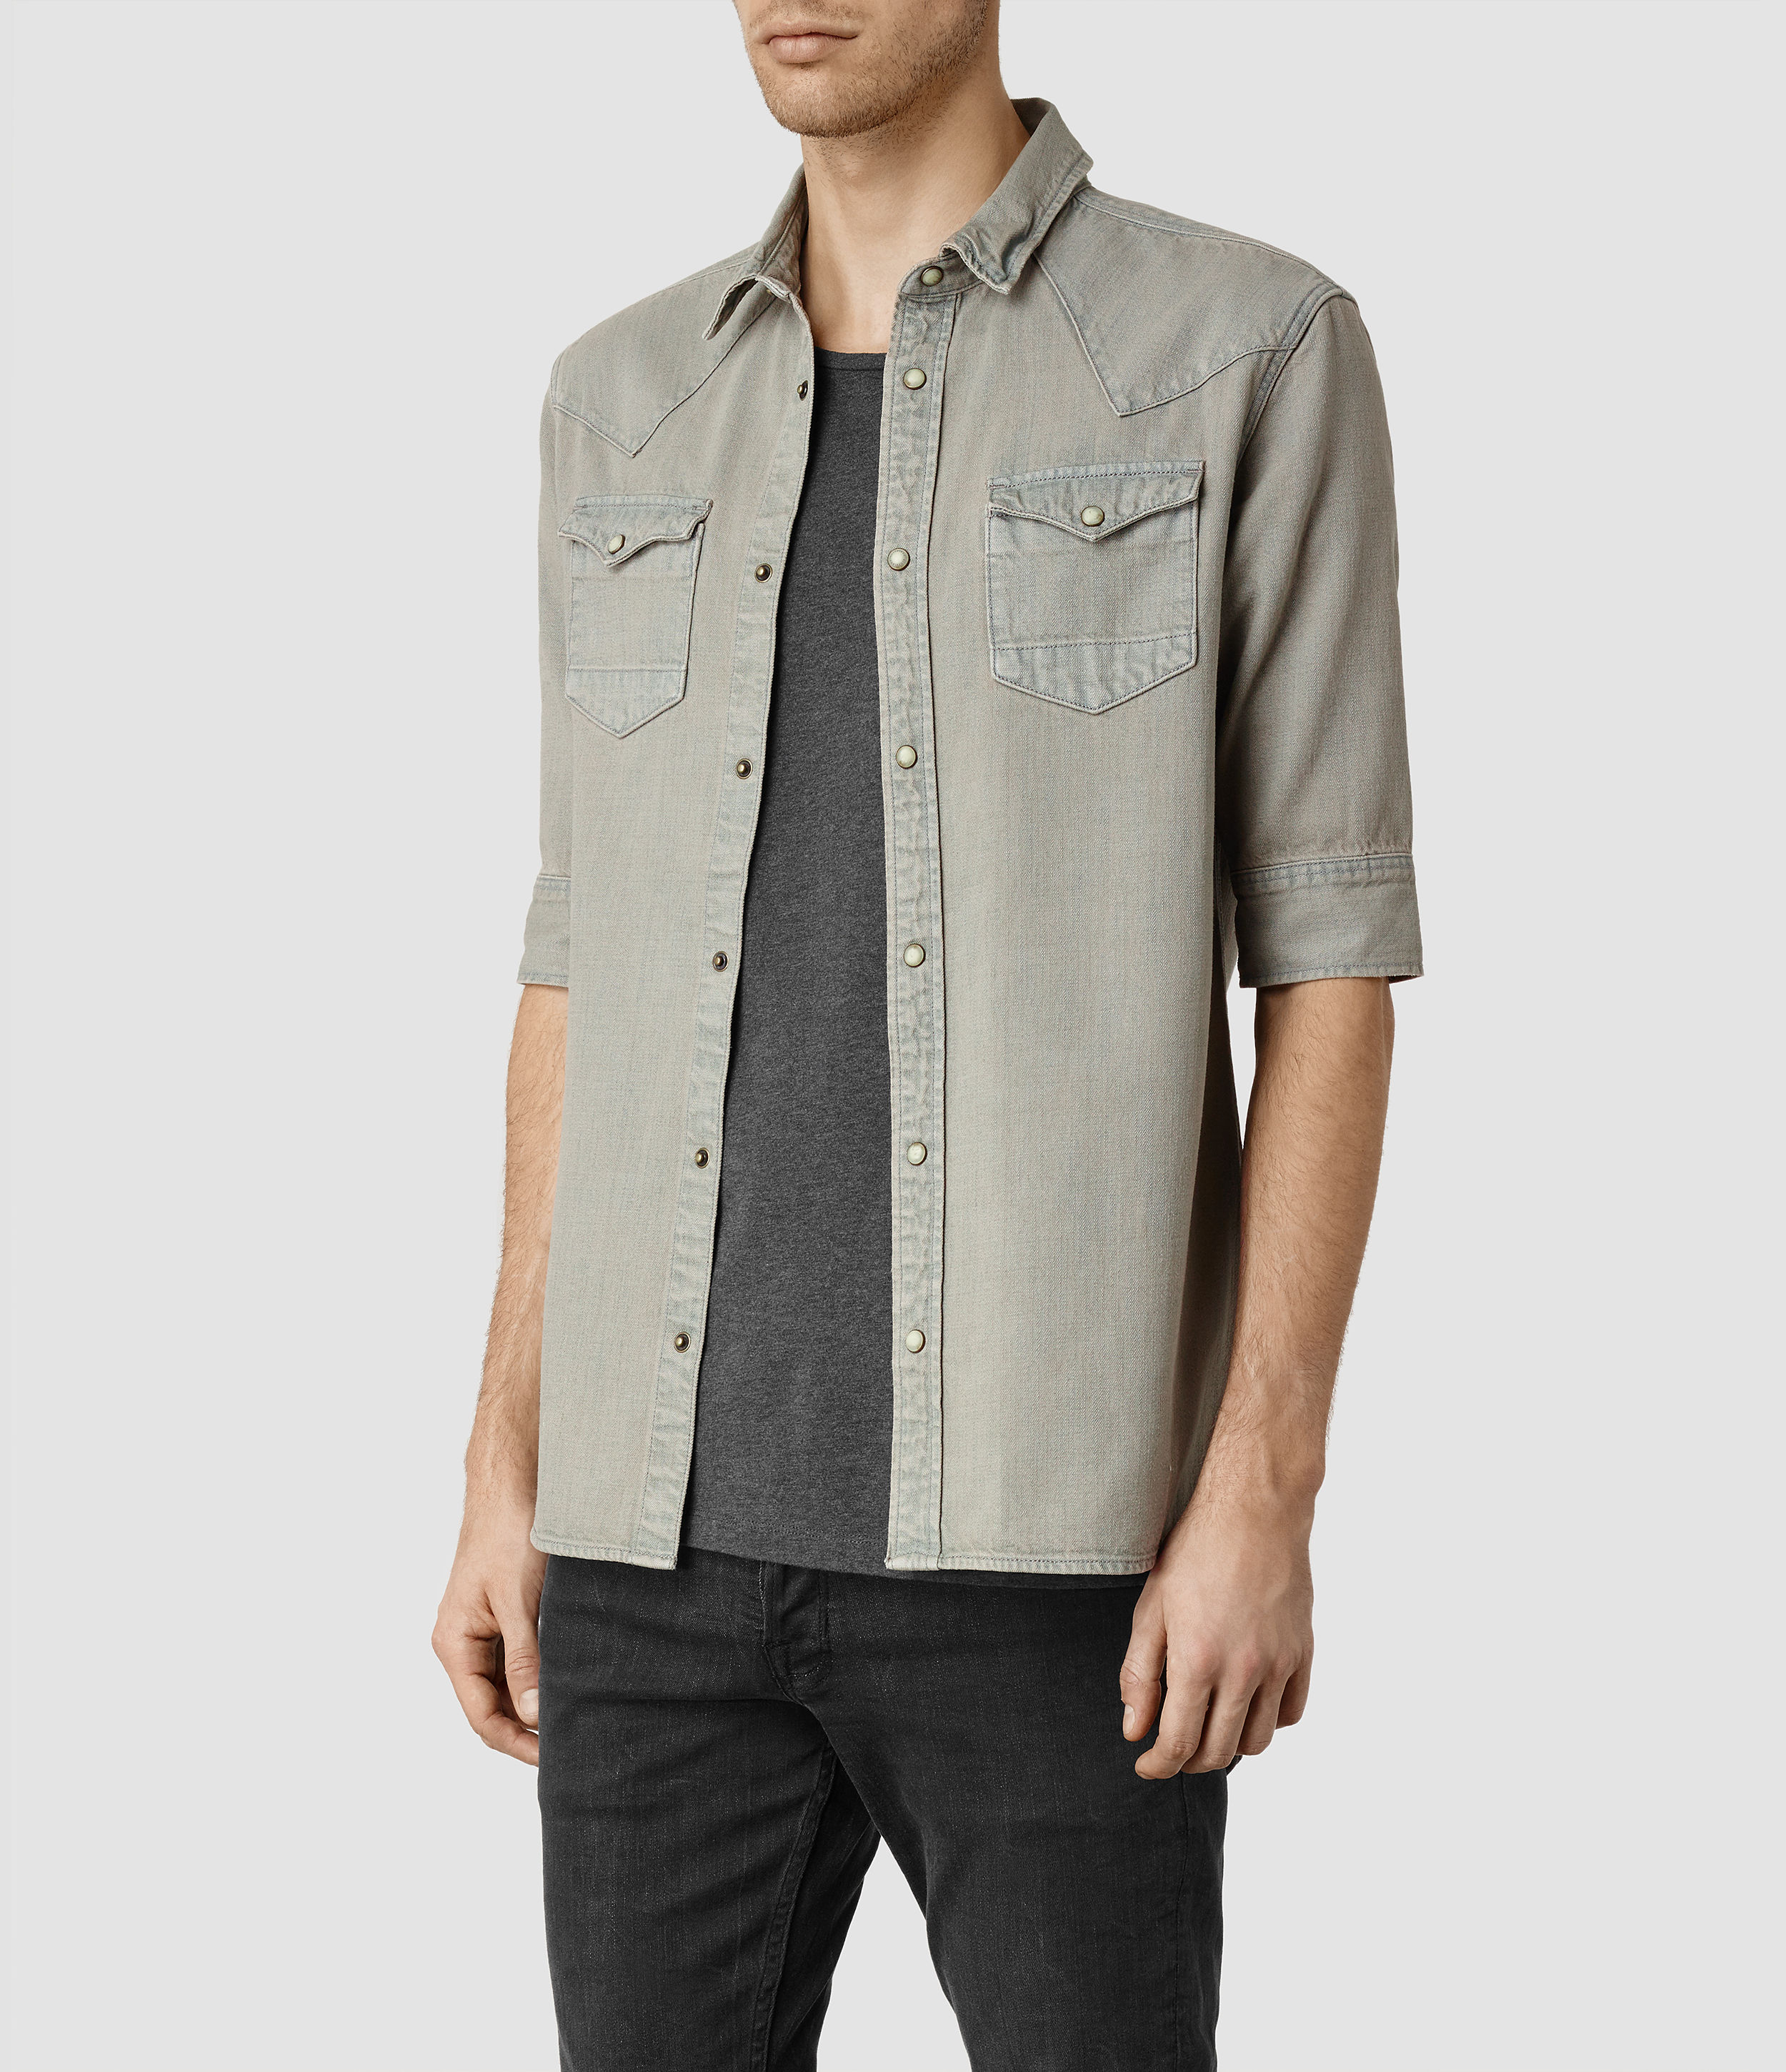 e5e1aaa3d5 Lyst - AllSaints Cannon Half Sleeved Shirt in Gray for Men